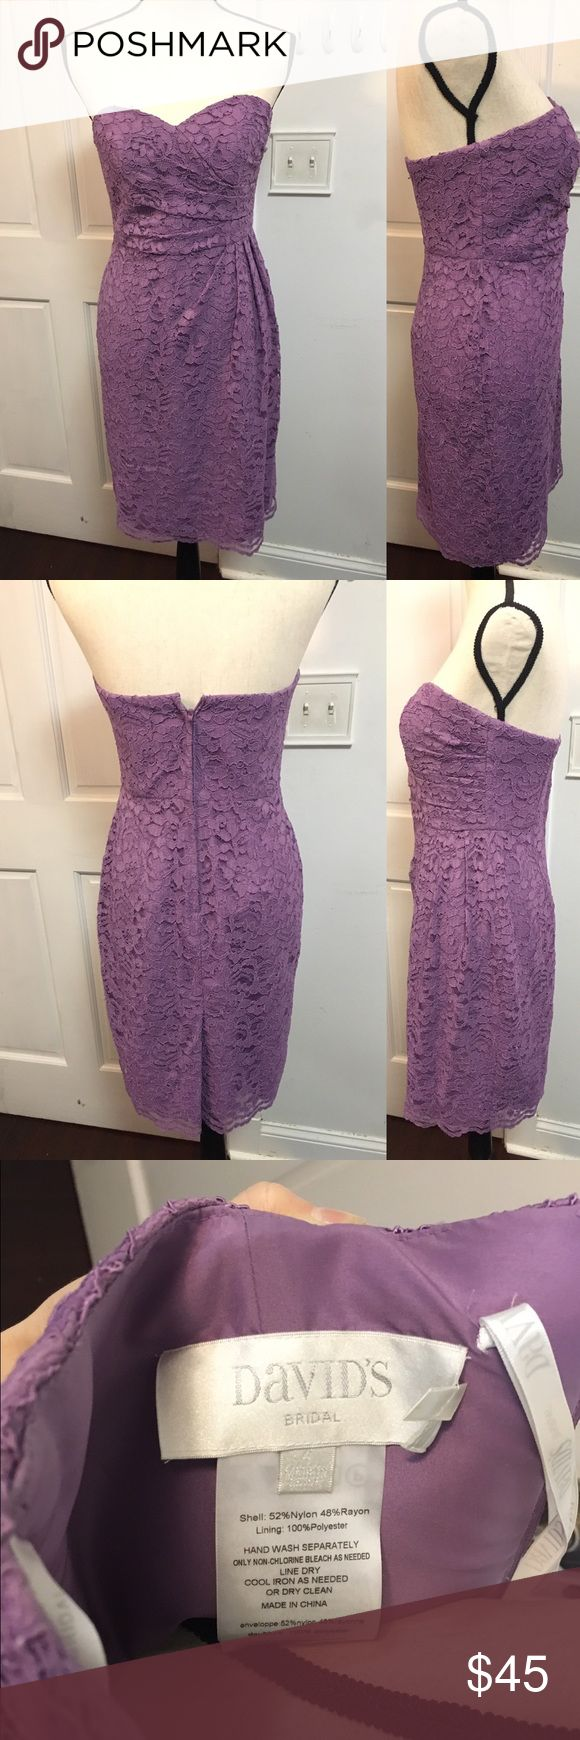 Lavender Lace Strapless Dress Sz 4 Beautiful dress for occasions! In great condition. Size 4 David's Bridal Dresses Strapless